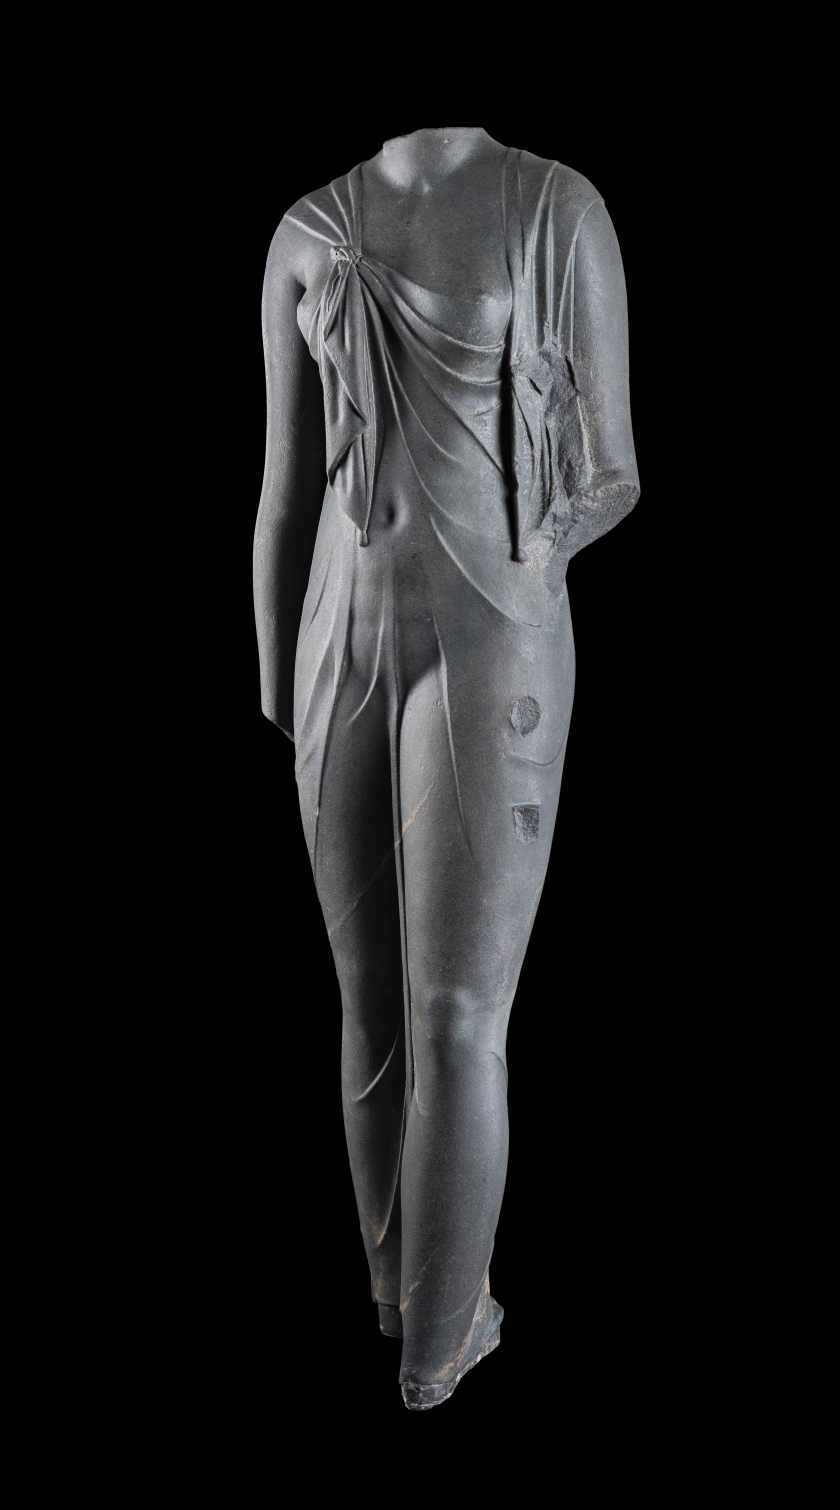 Cut in hard, dark stone, this feminine body has a startli ngly sculptural quality. Complete, it must have been slightly larger than life-size. The statu e is certainly one of the queens of the Ptolemaic dynasty (likely Arsinoe II) dressed as the goddes s Isis, as confirmed by the knot that joins the ends of the shawl the woman wears, w hich was representative of the queens during this time period. The statue was found at t he site of Canopus. (Franck Goddio/Hilti Foundation)